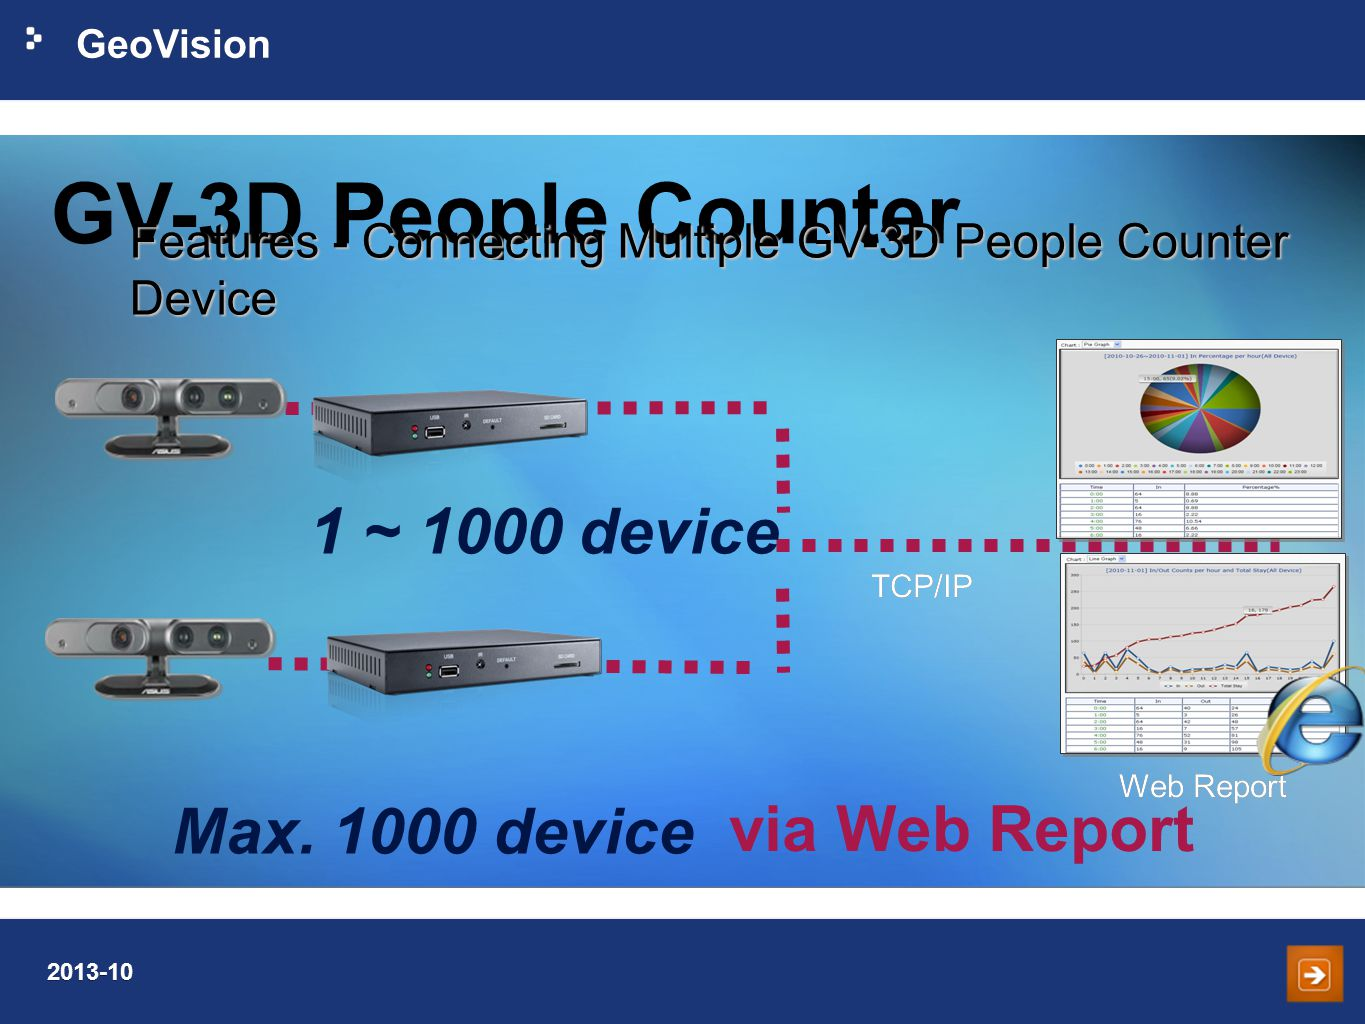 GV-3D People Counter 1 ~ 1000 device via Web Report Max device